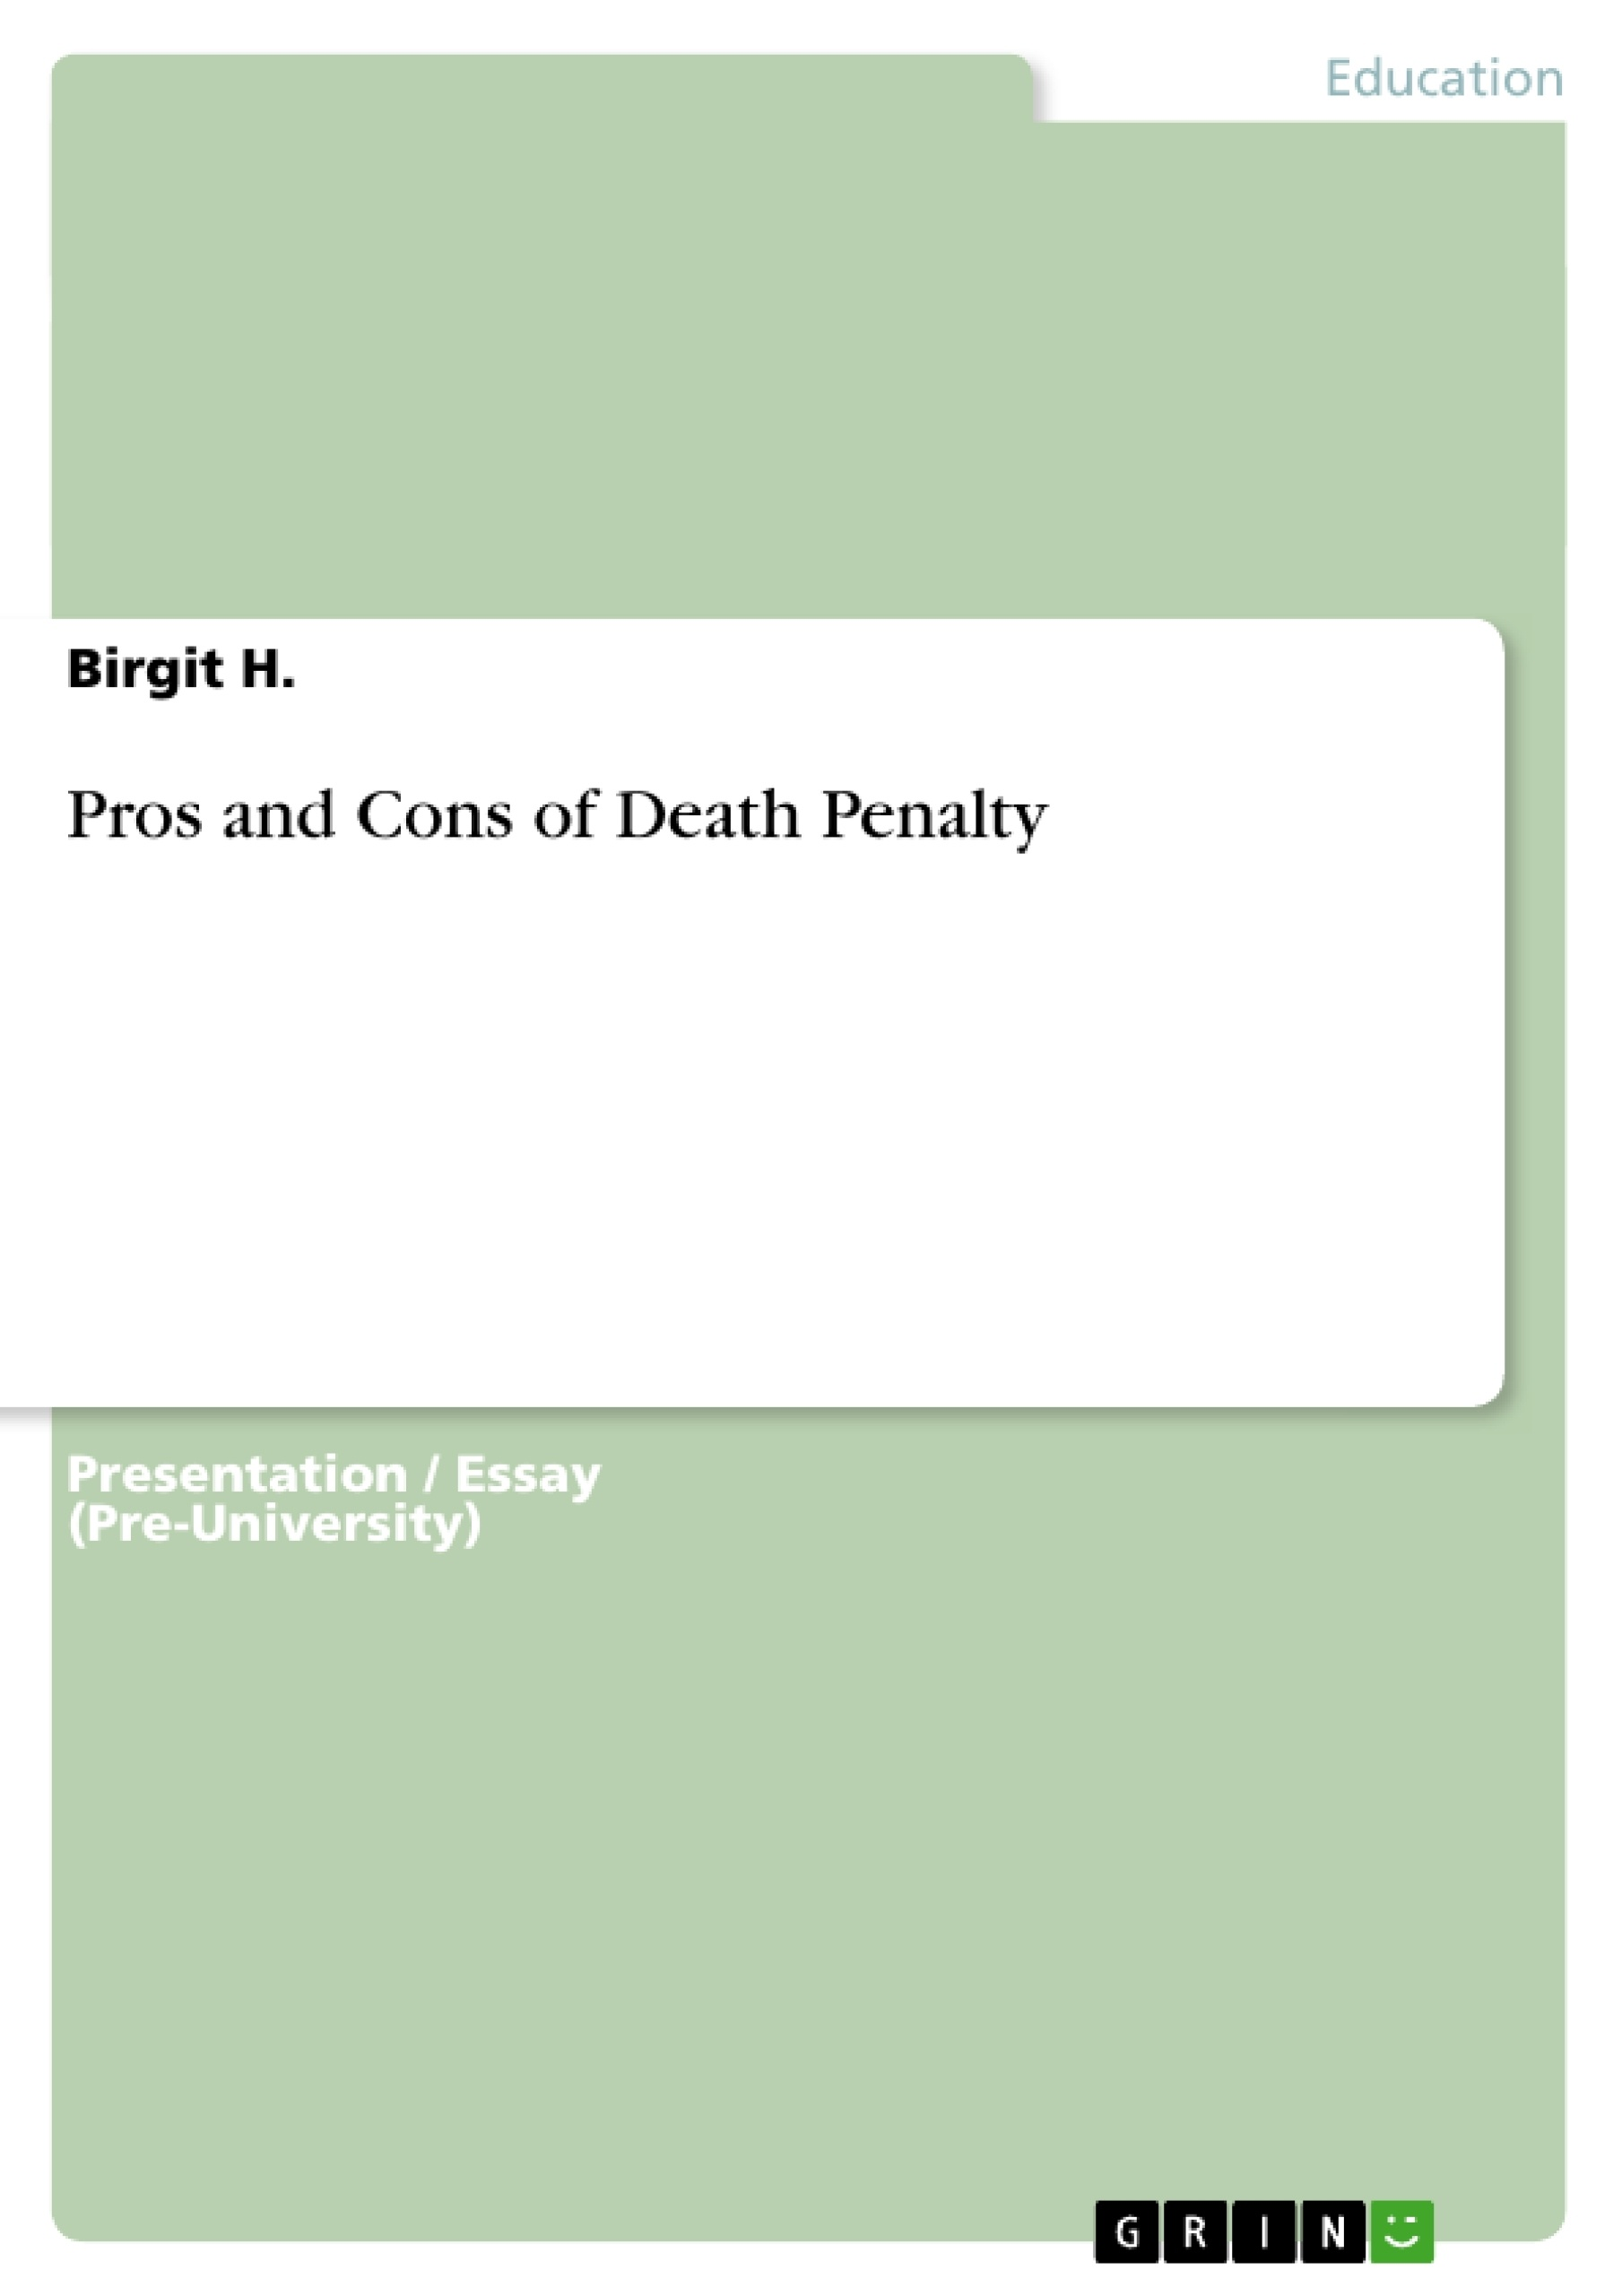 pros and cons of death penalty publish your master s thesis pros and cons of death penalty publish your master s thesis bachelor s thesis essay or term paper